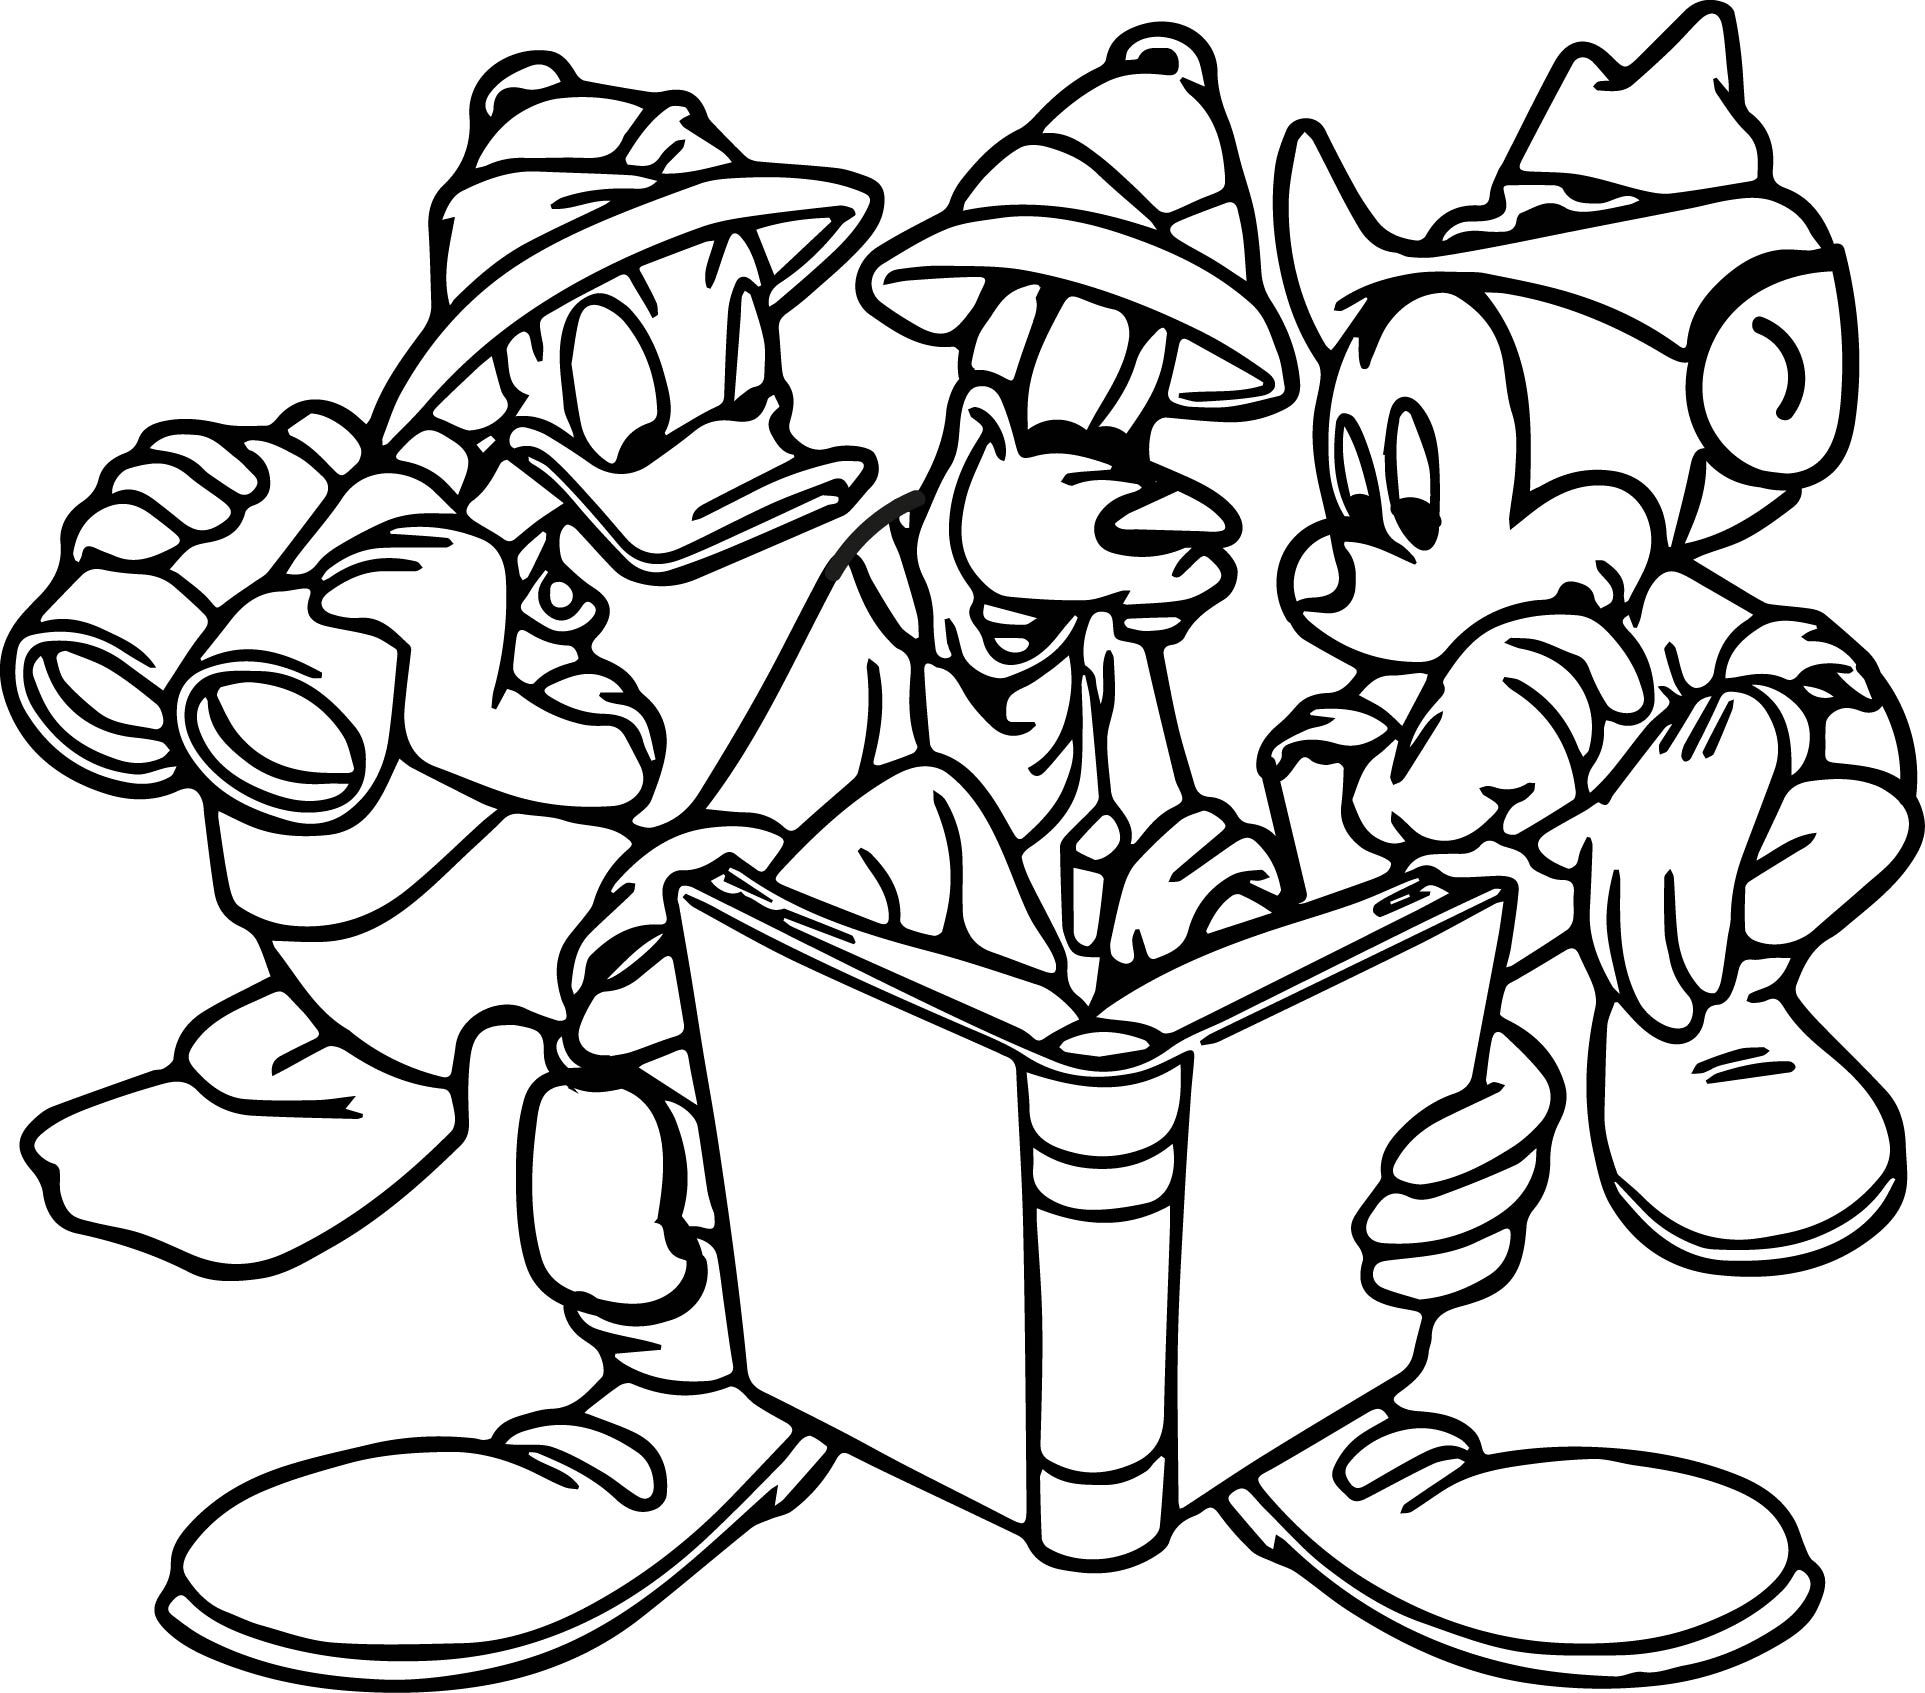 28 Safari Coloring Pages Selection   FREE COLORING PAGES - Part 2